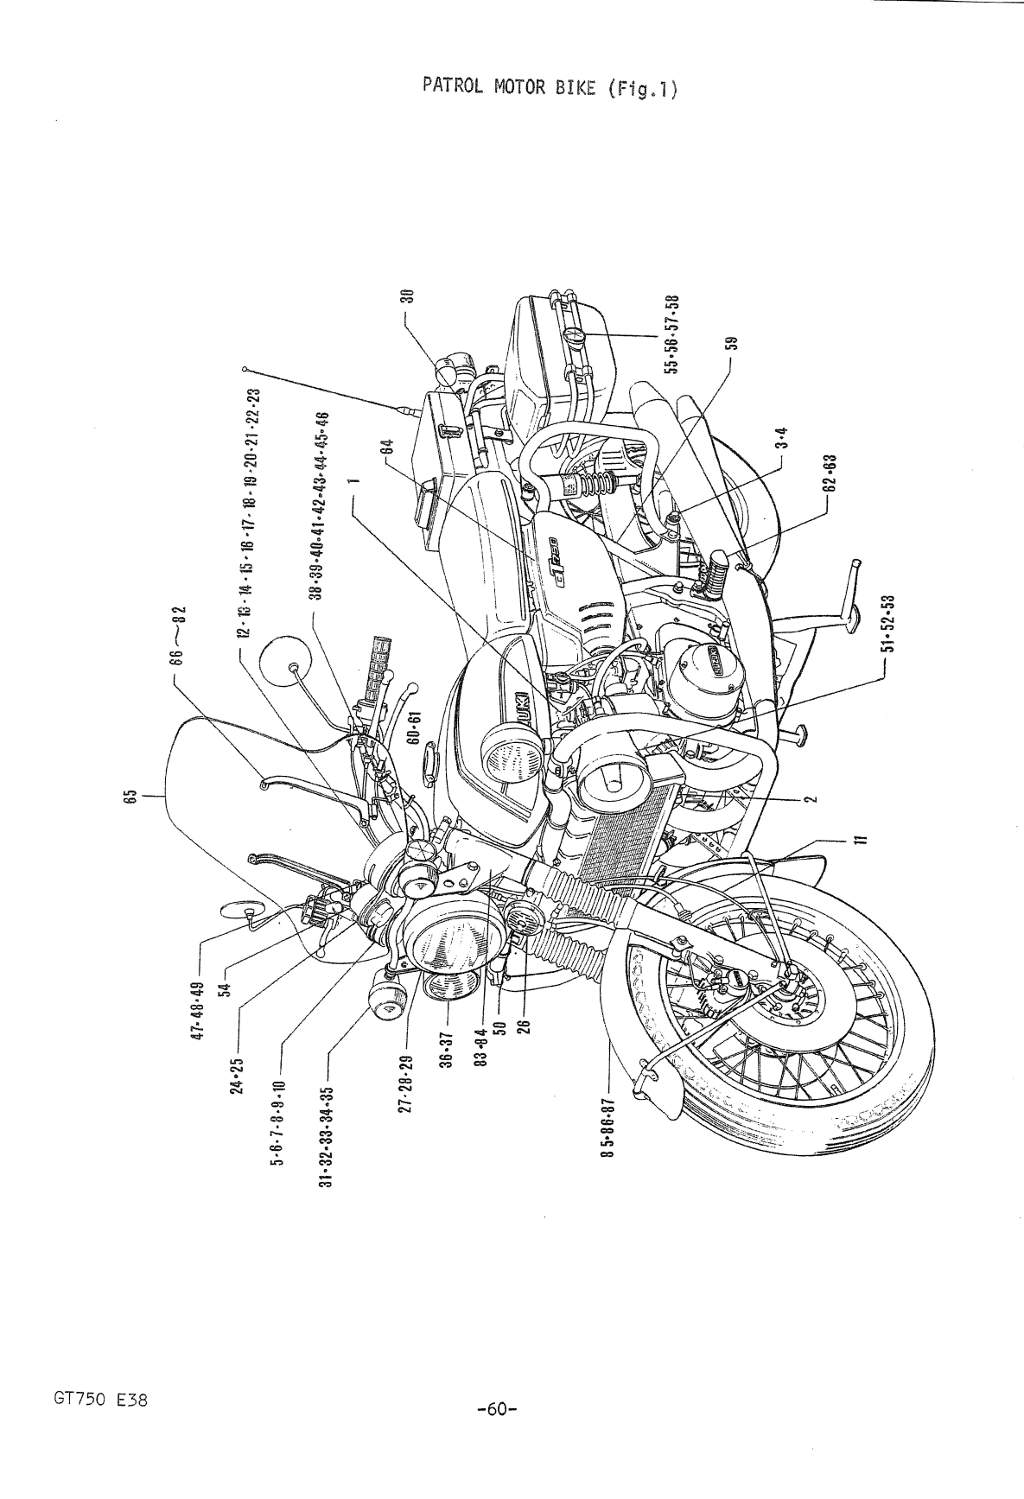 A Field Guide To The Suzuki Gt750 2007 Jeep Wrangler Engine Parts Diagram Return